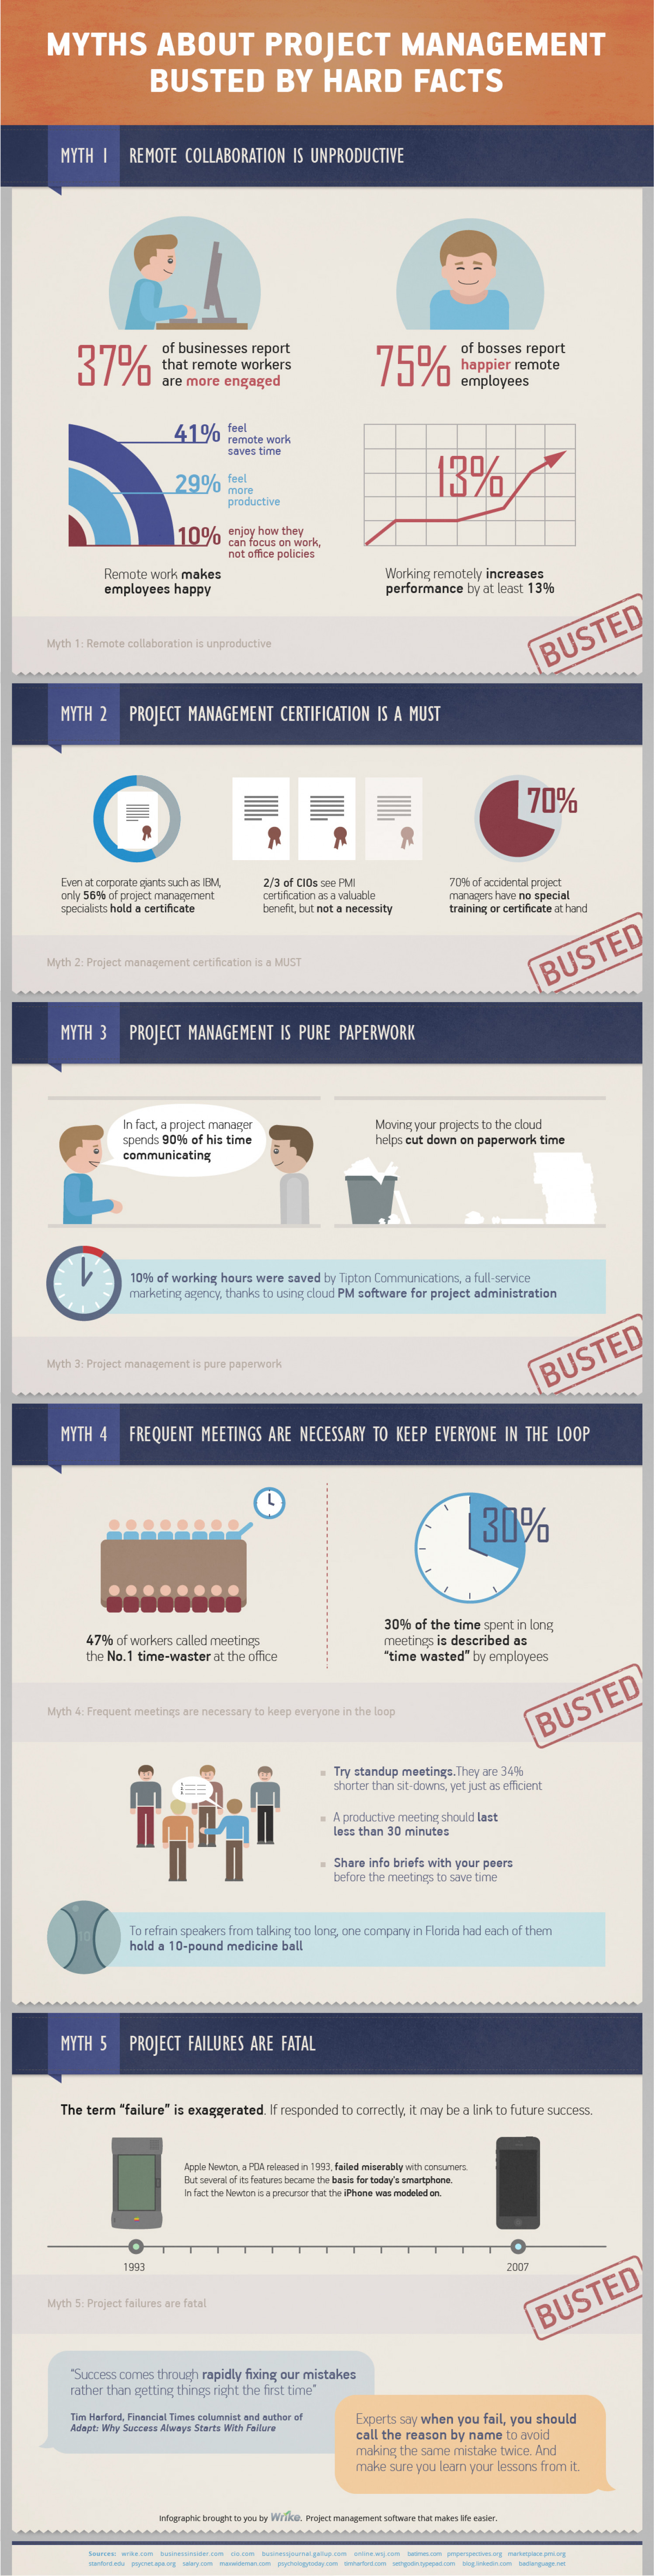 Top 5 Project Management Myths BUSTED  Infographic